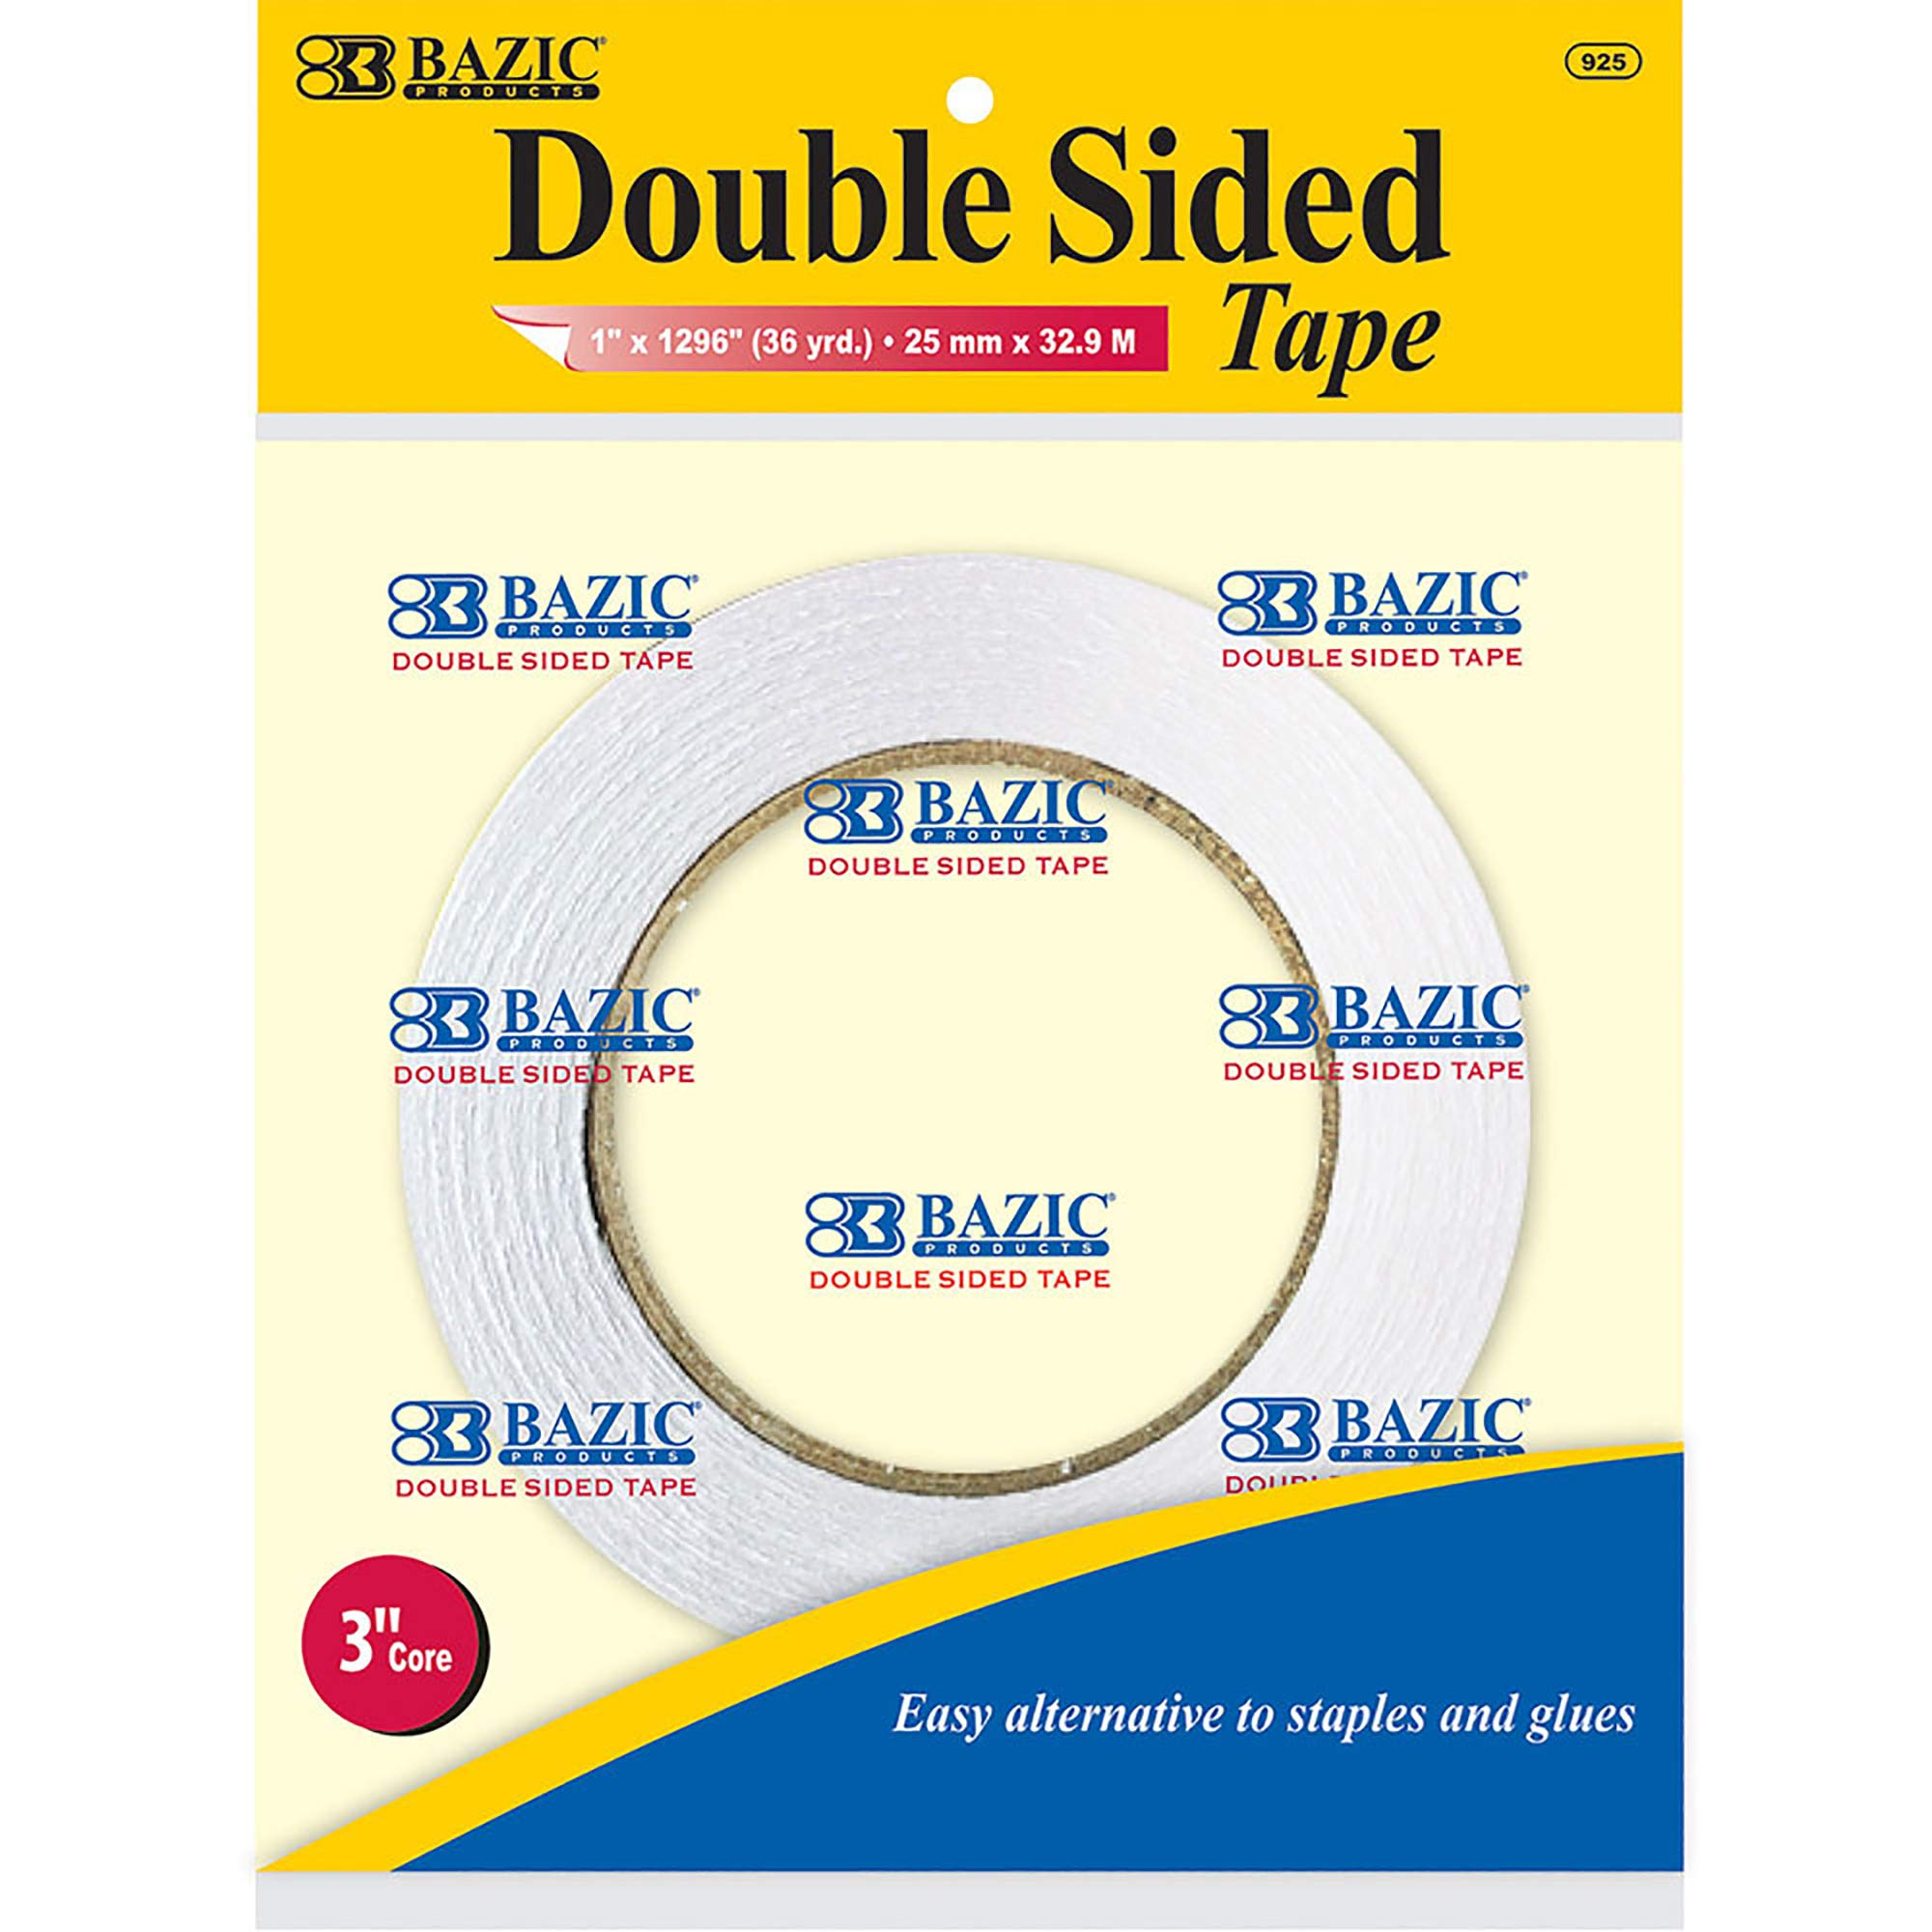 BAZIC 1'' X 36 Yard (1296'') Double Sided Tape (Box of 24) by B BAZIC PRODUCTS